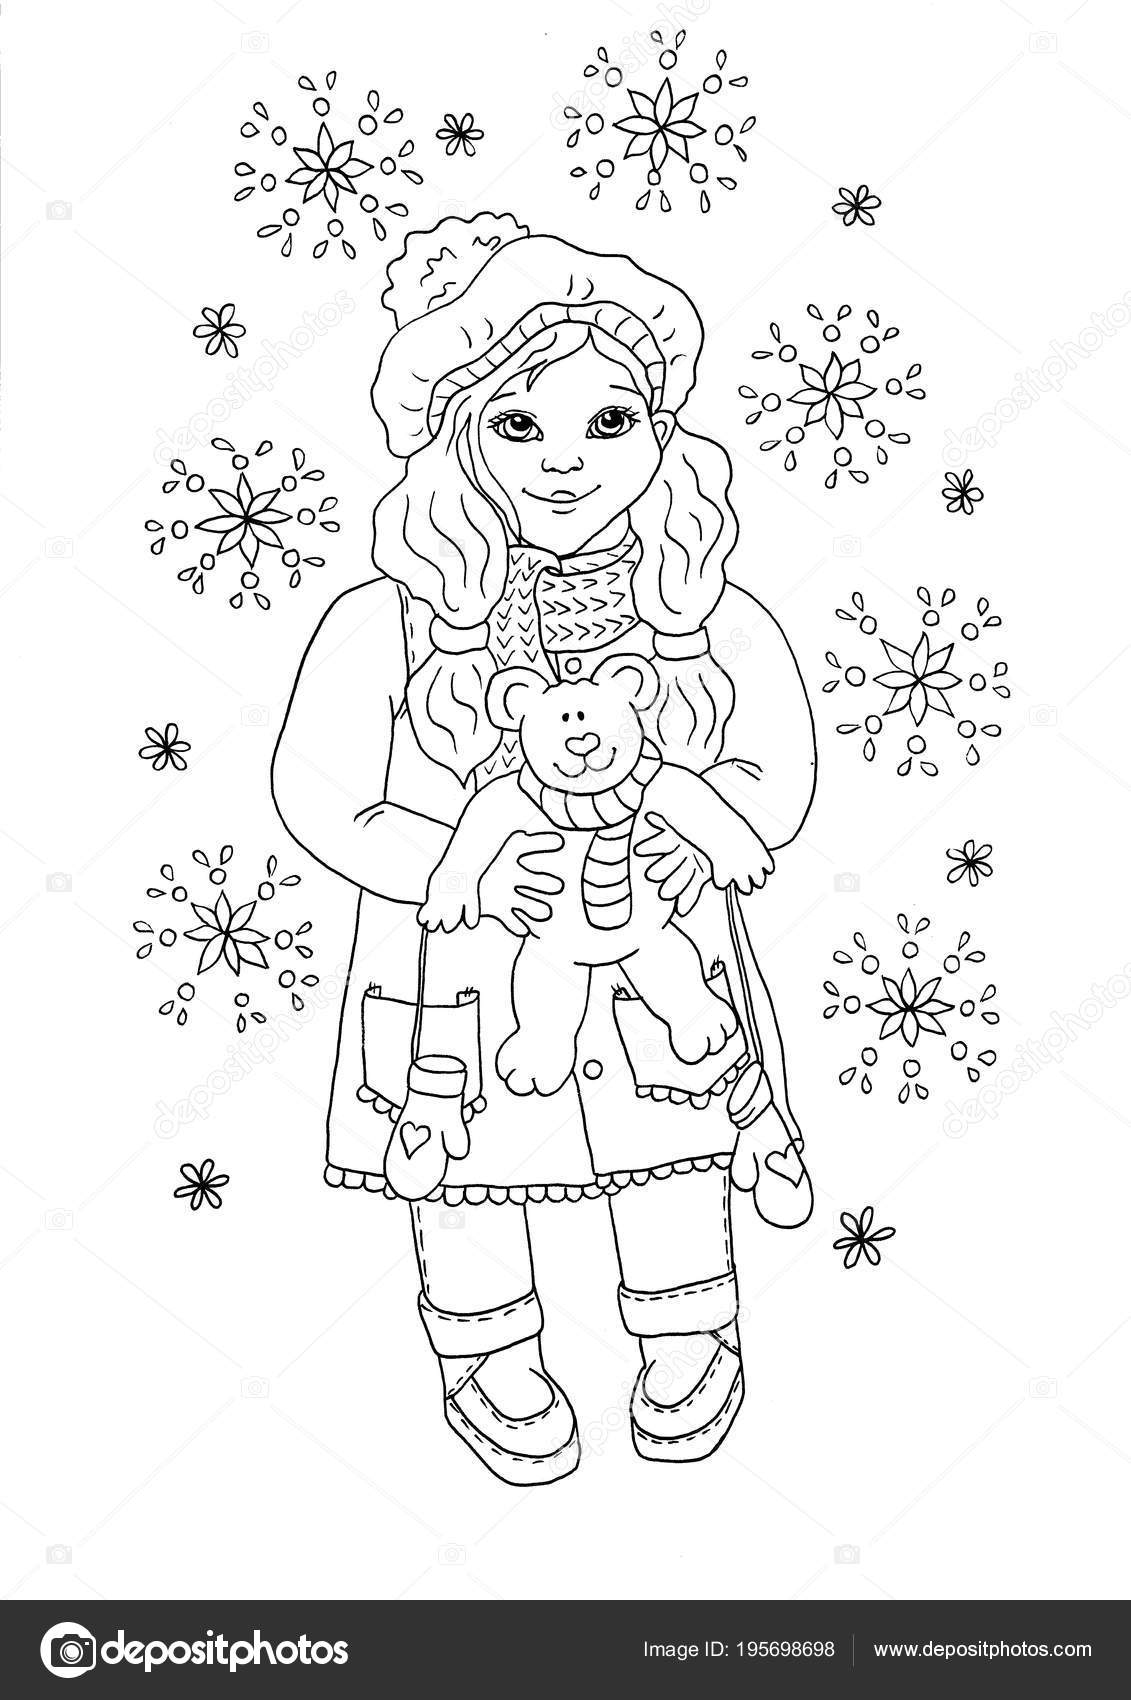 Baby Girl Coloring Pages - Coloring Home | 1700x1131